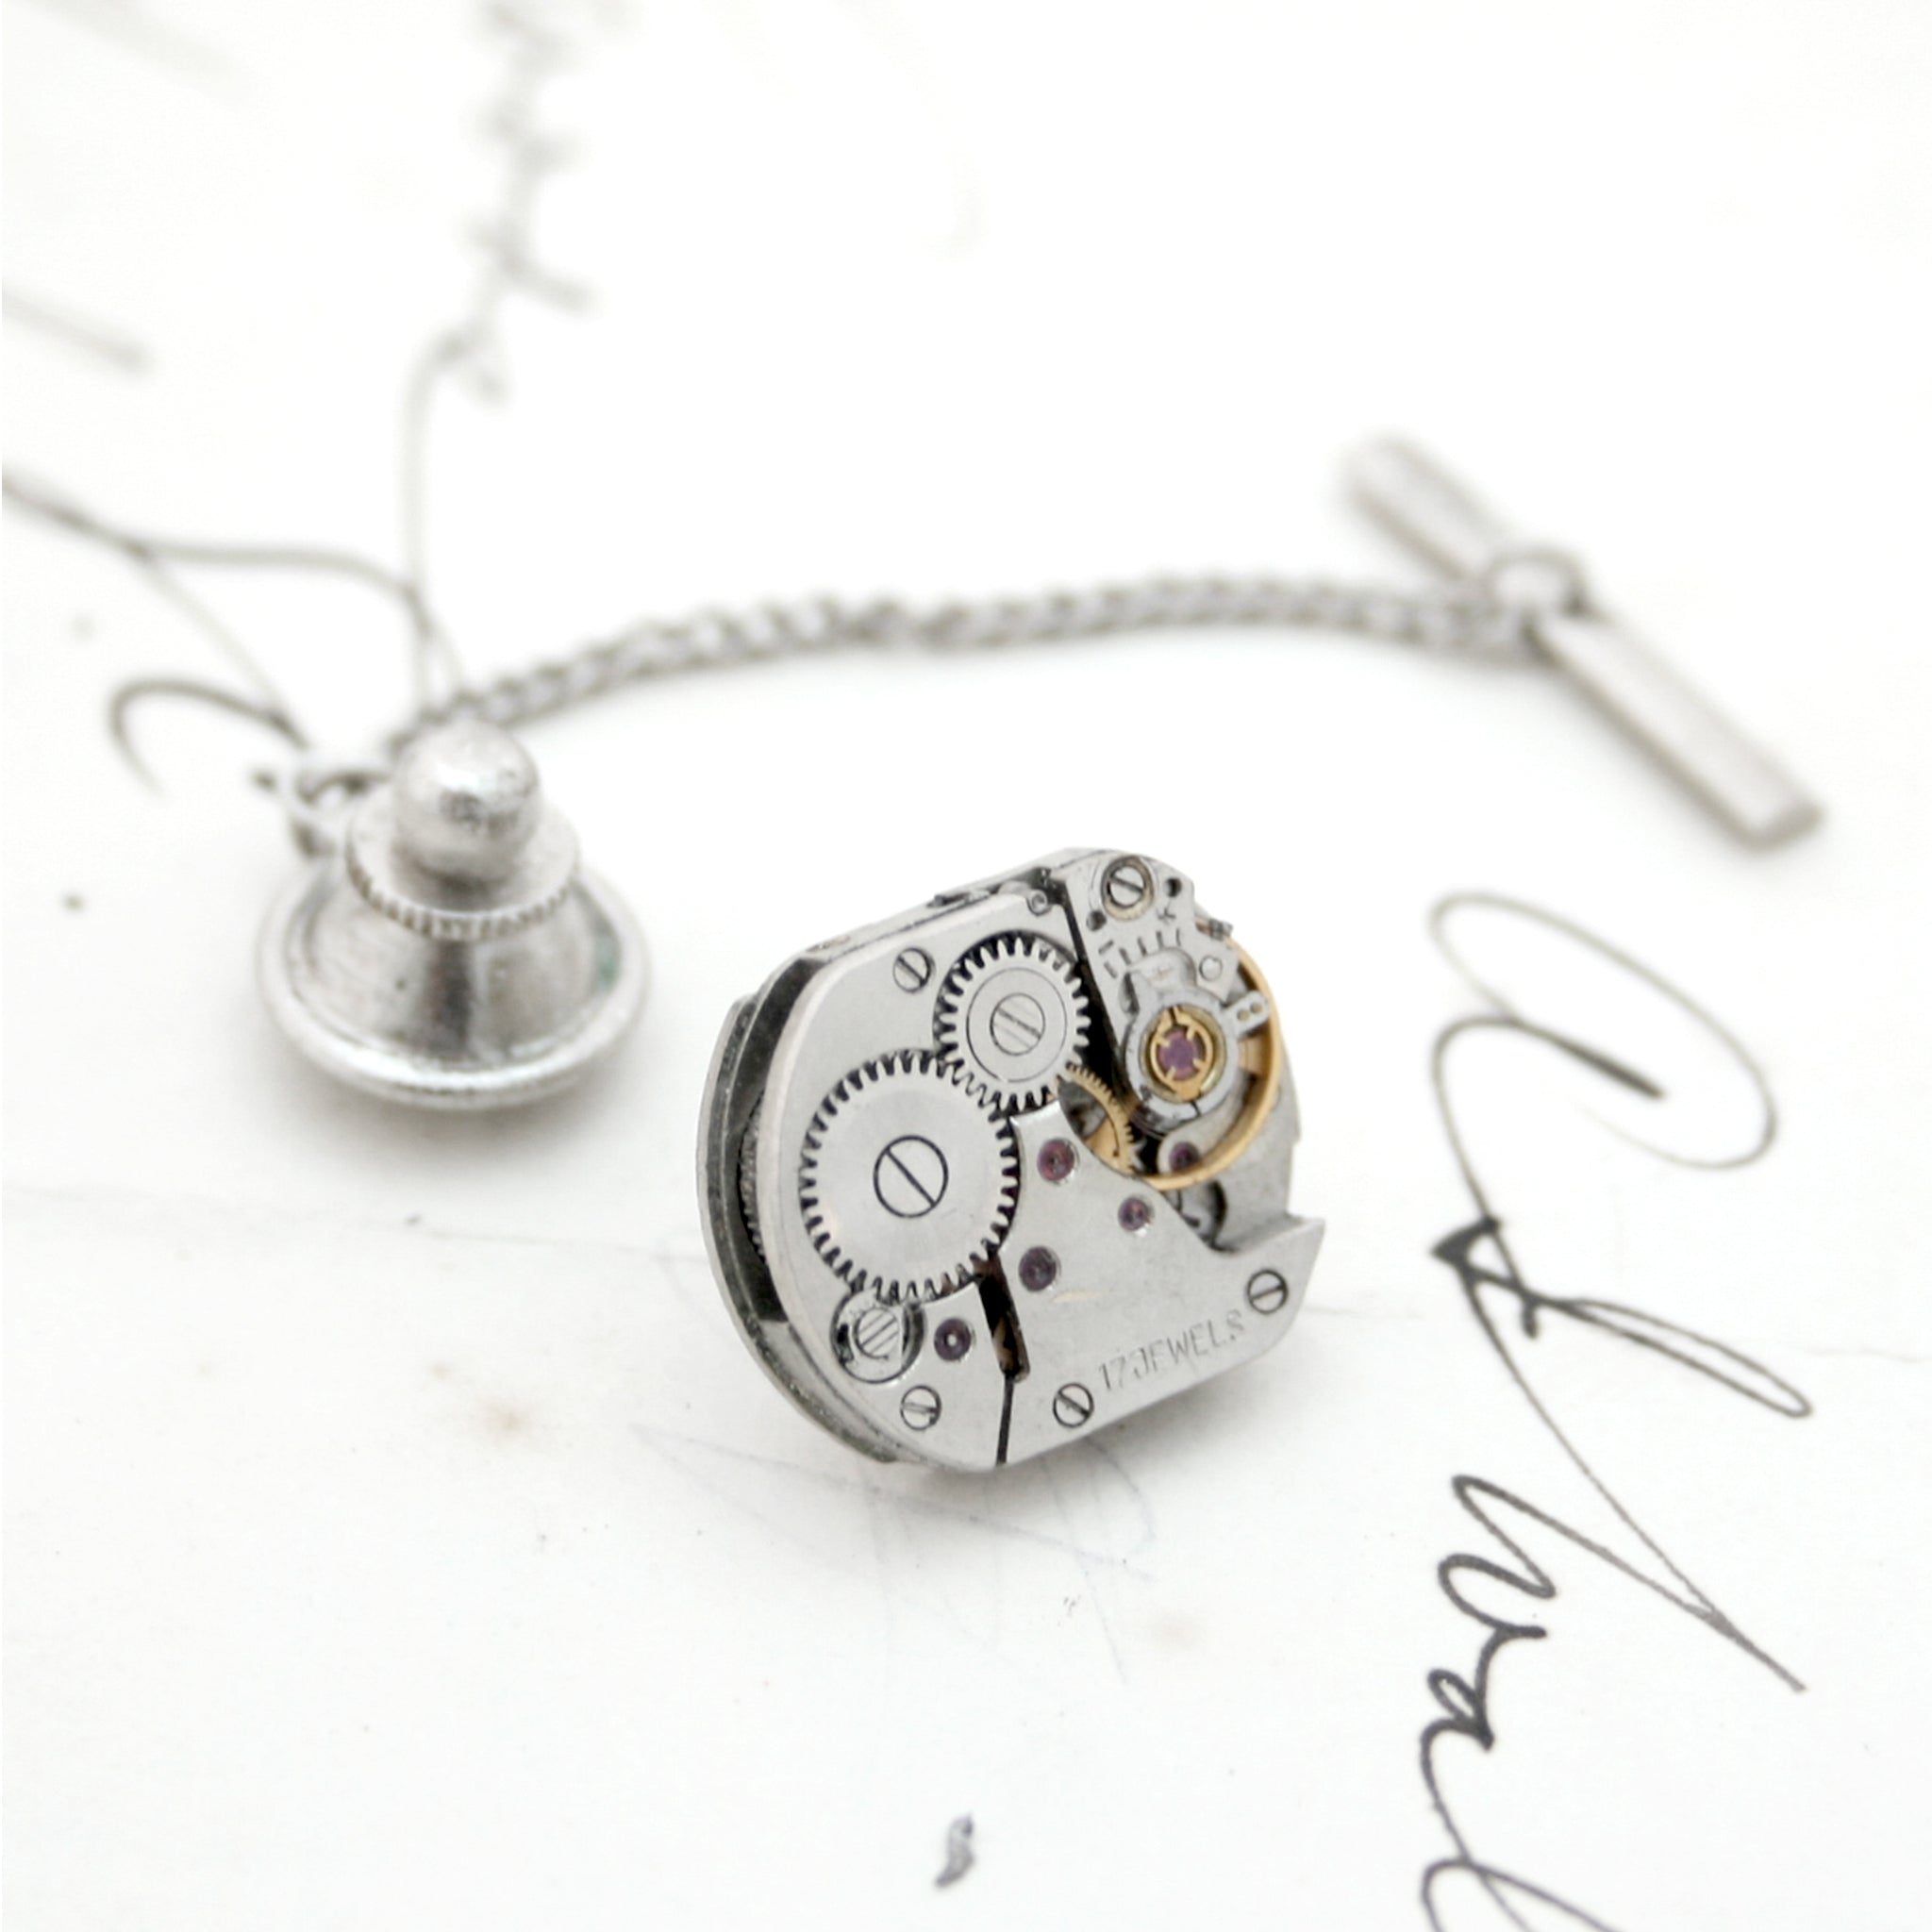 Steampunk Tie Tack made of watch mechanism